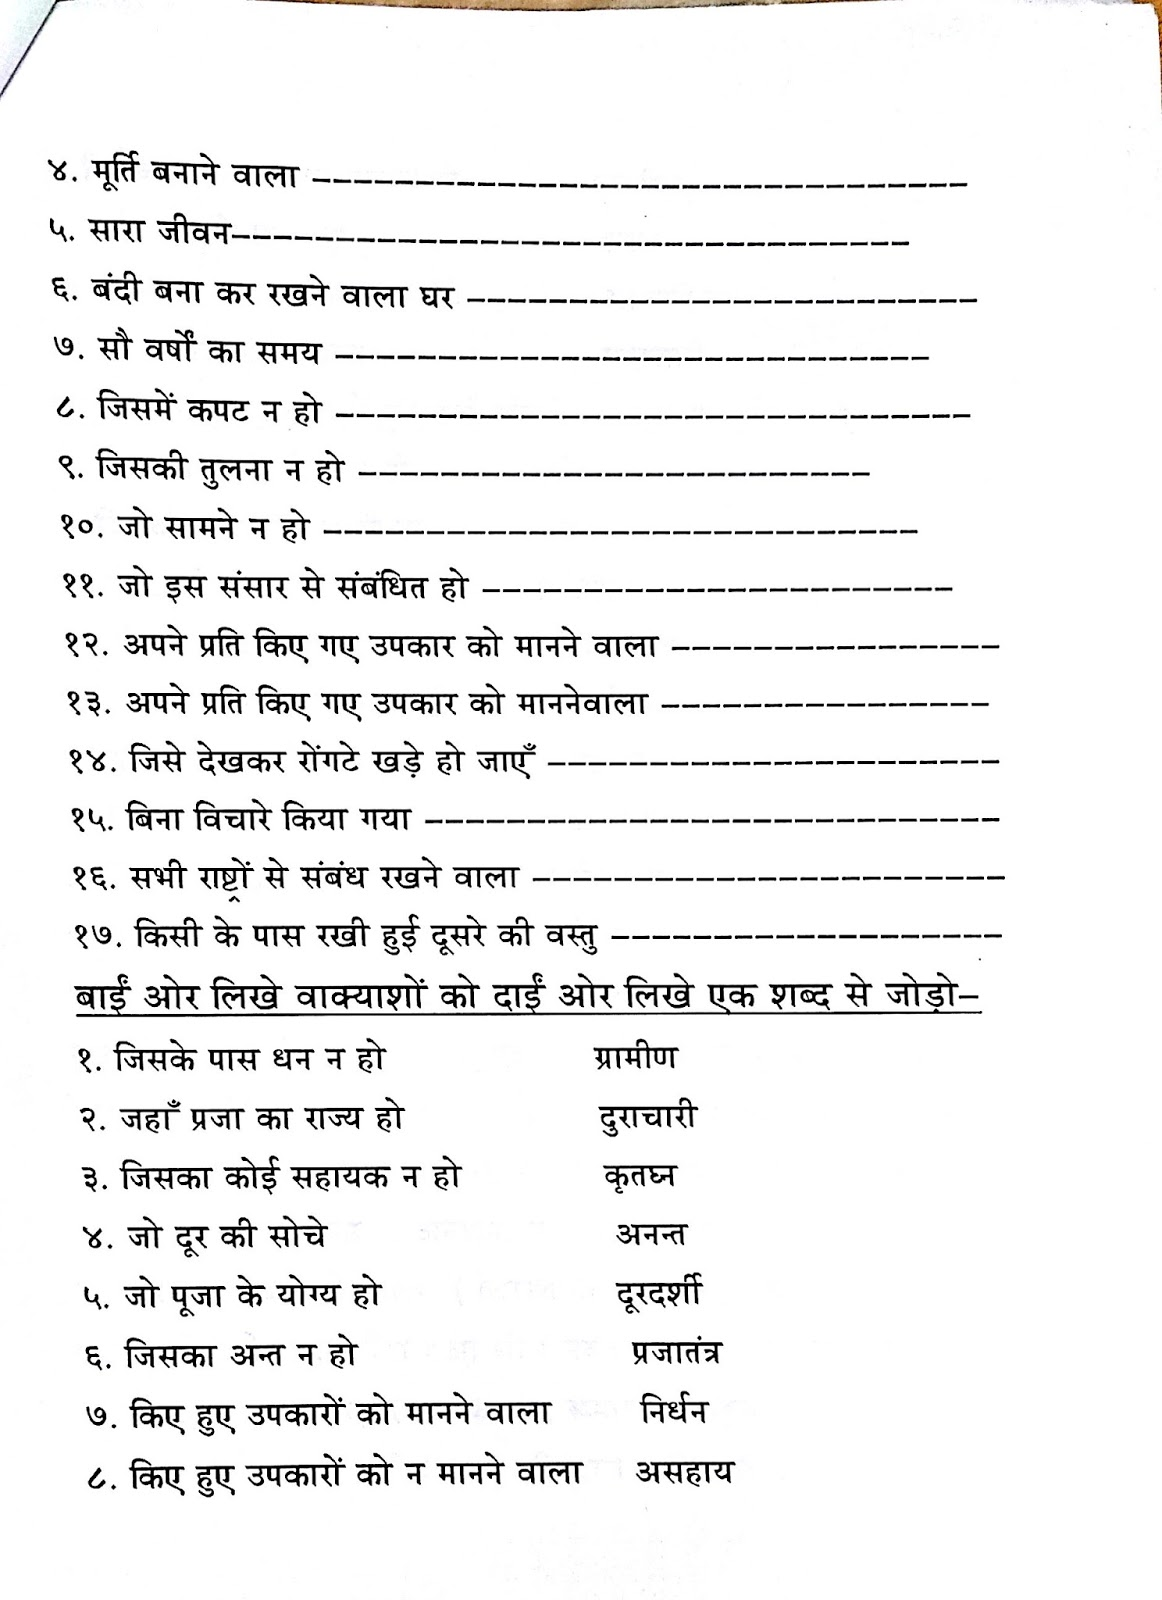 Hindi Grammar Work Sheet Collection For Classes 5 6 7 Amp 8 One Word For Many Words Work Sheets